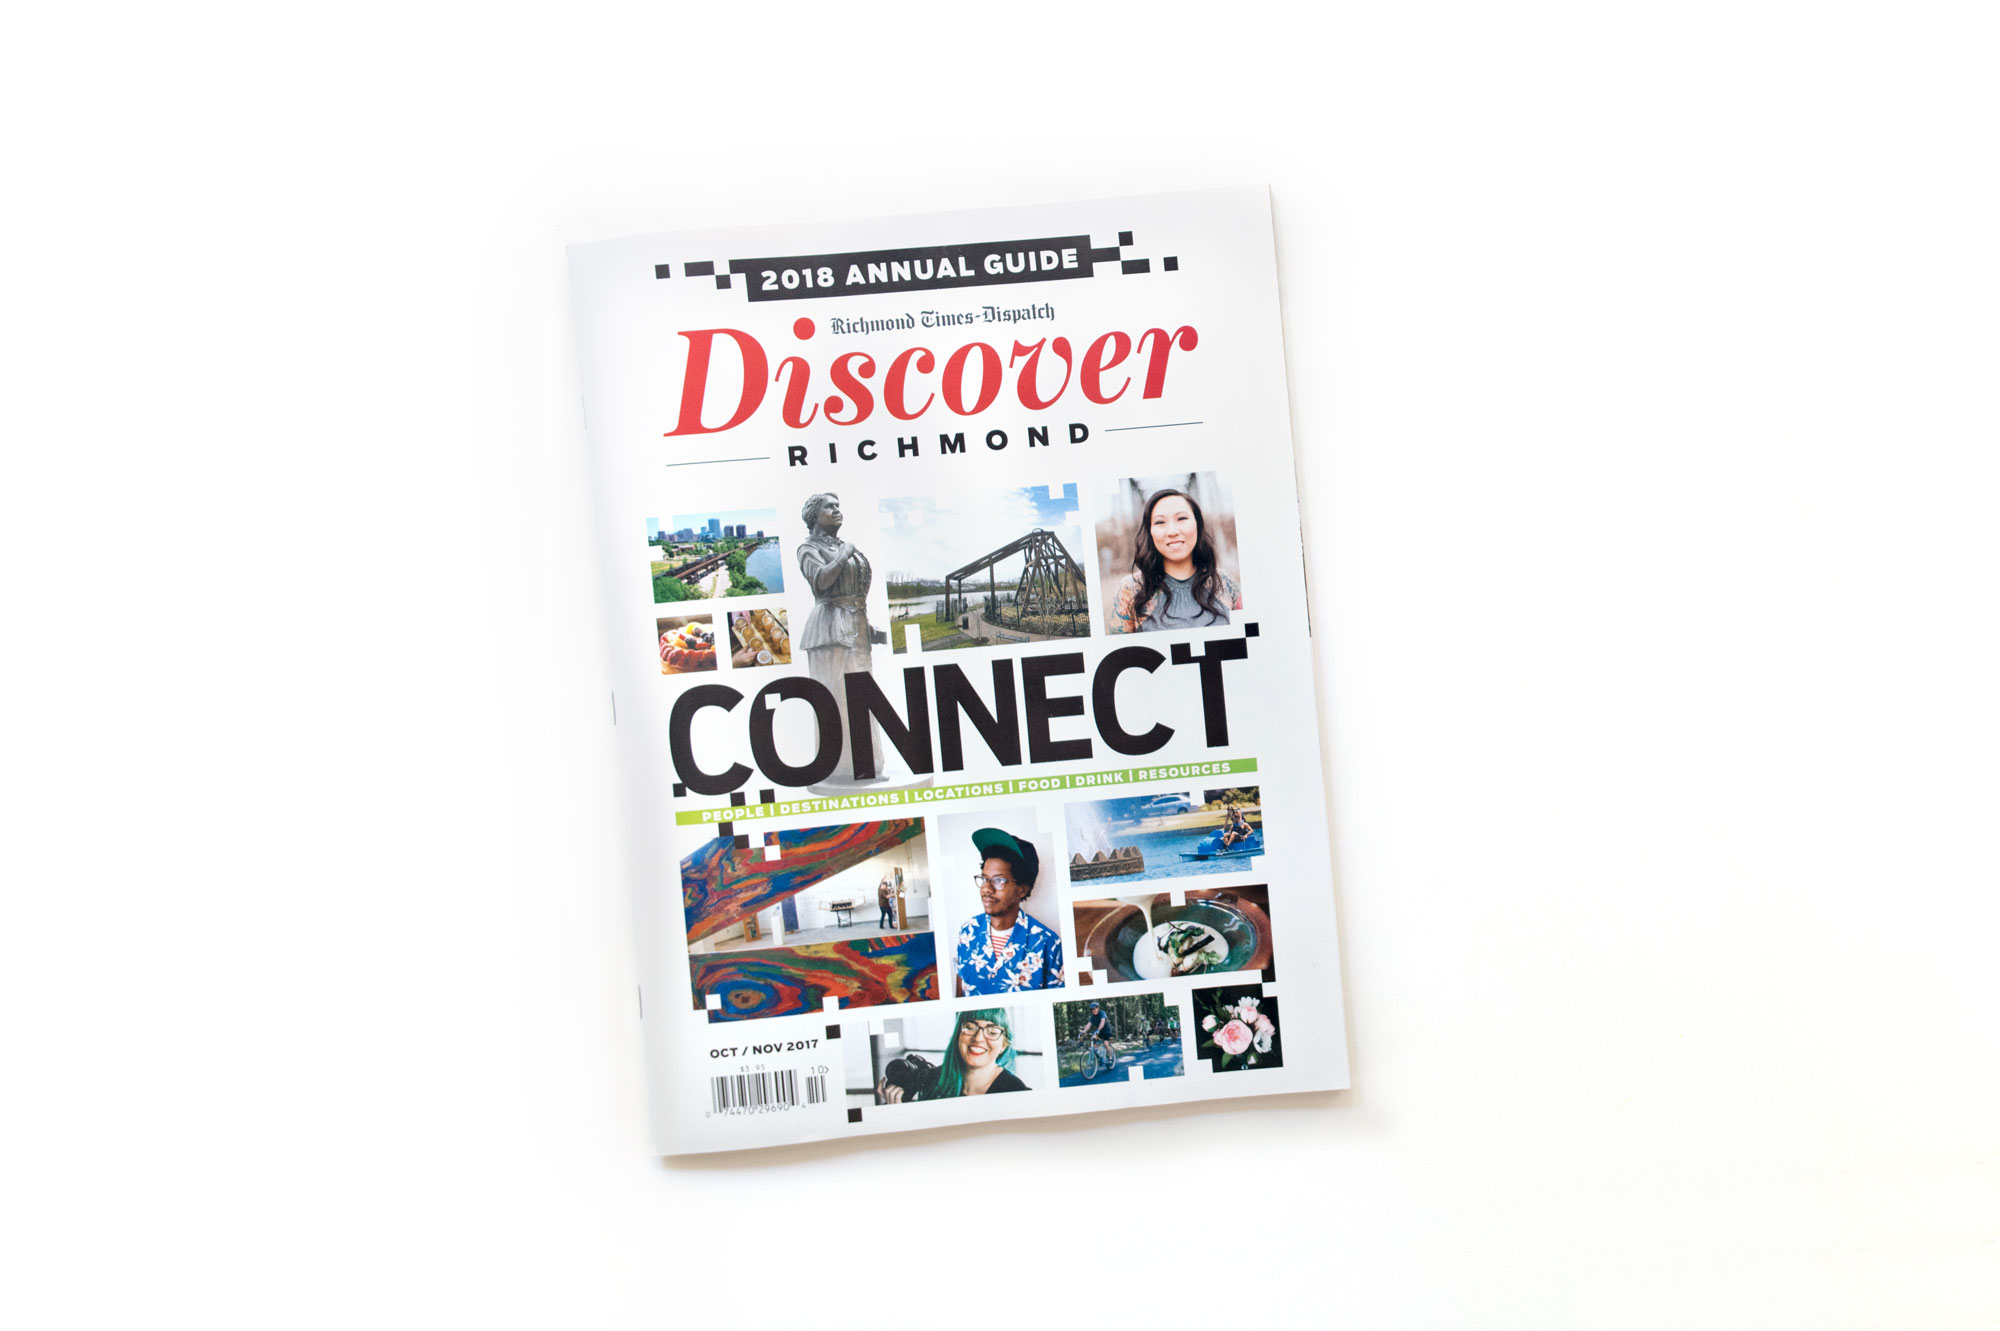 Discover Richmond Cover Paper Rose Co.jpg